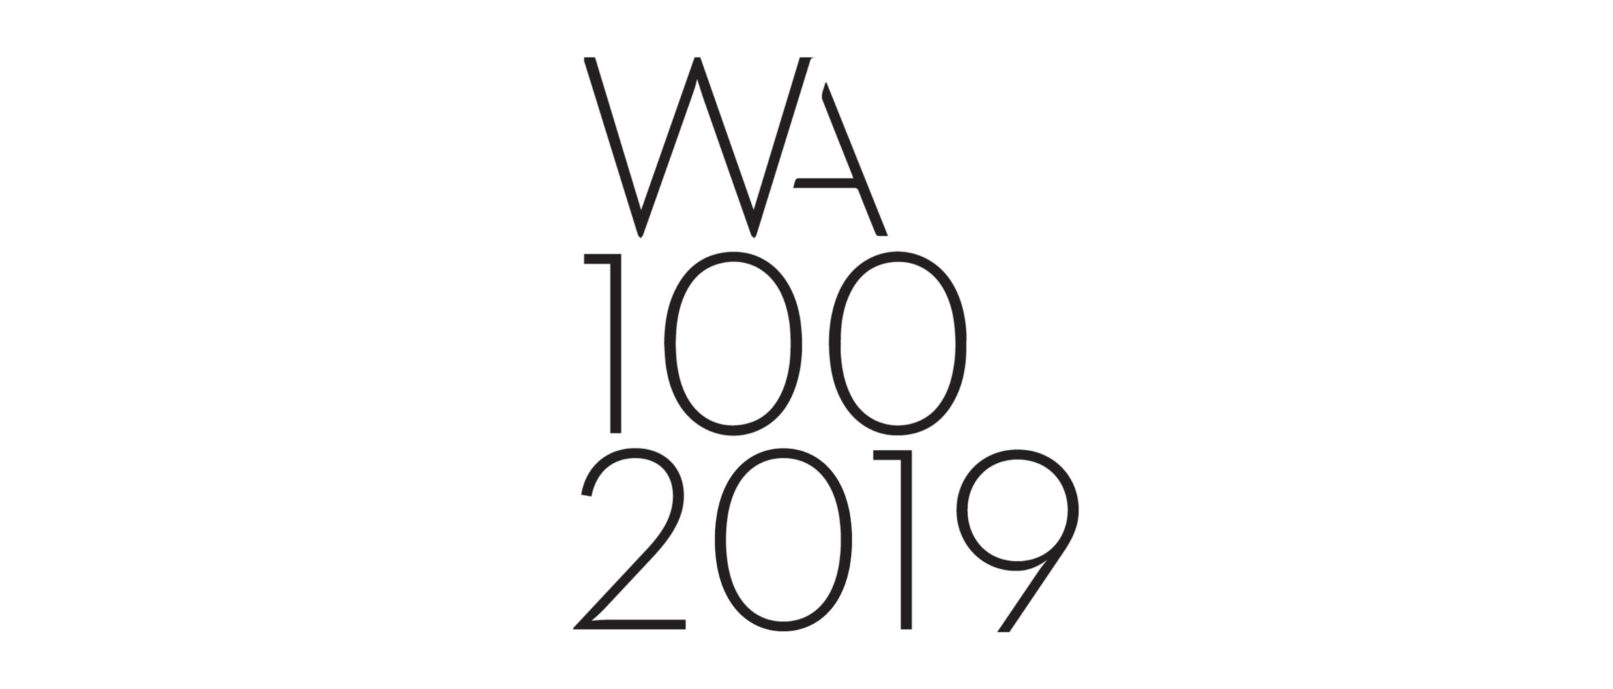 dhk listed as 109th largest architectural practice in the world and 'Ones to Watch'